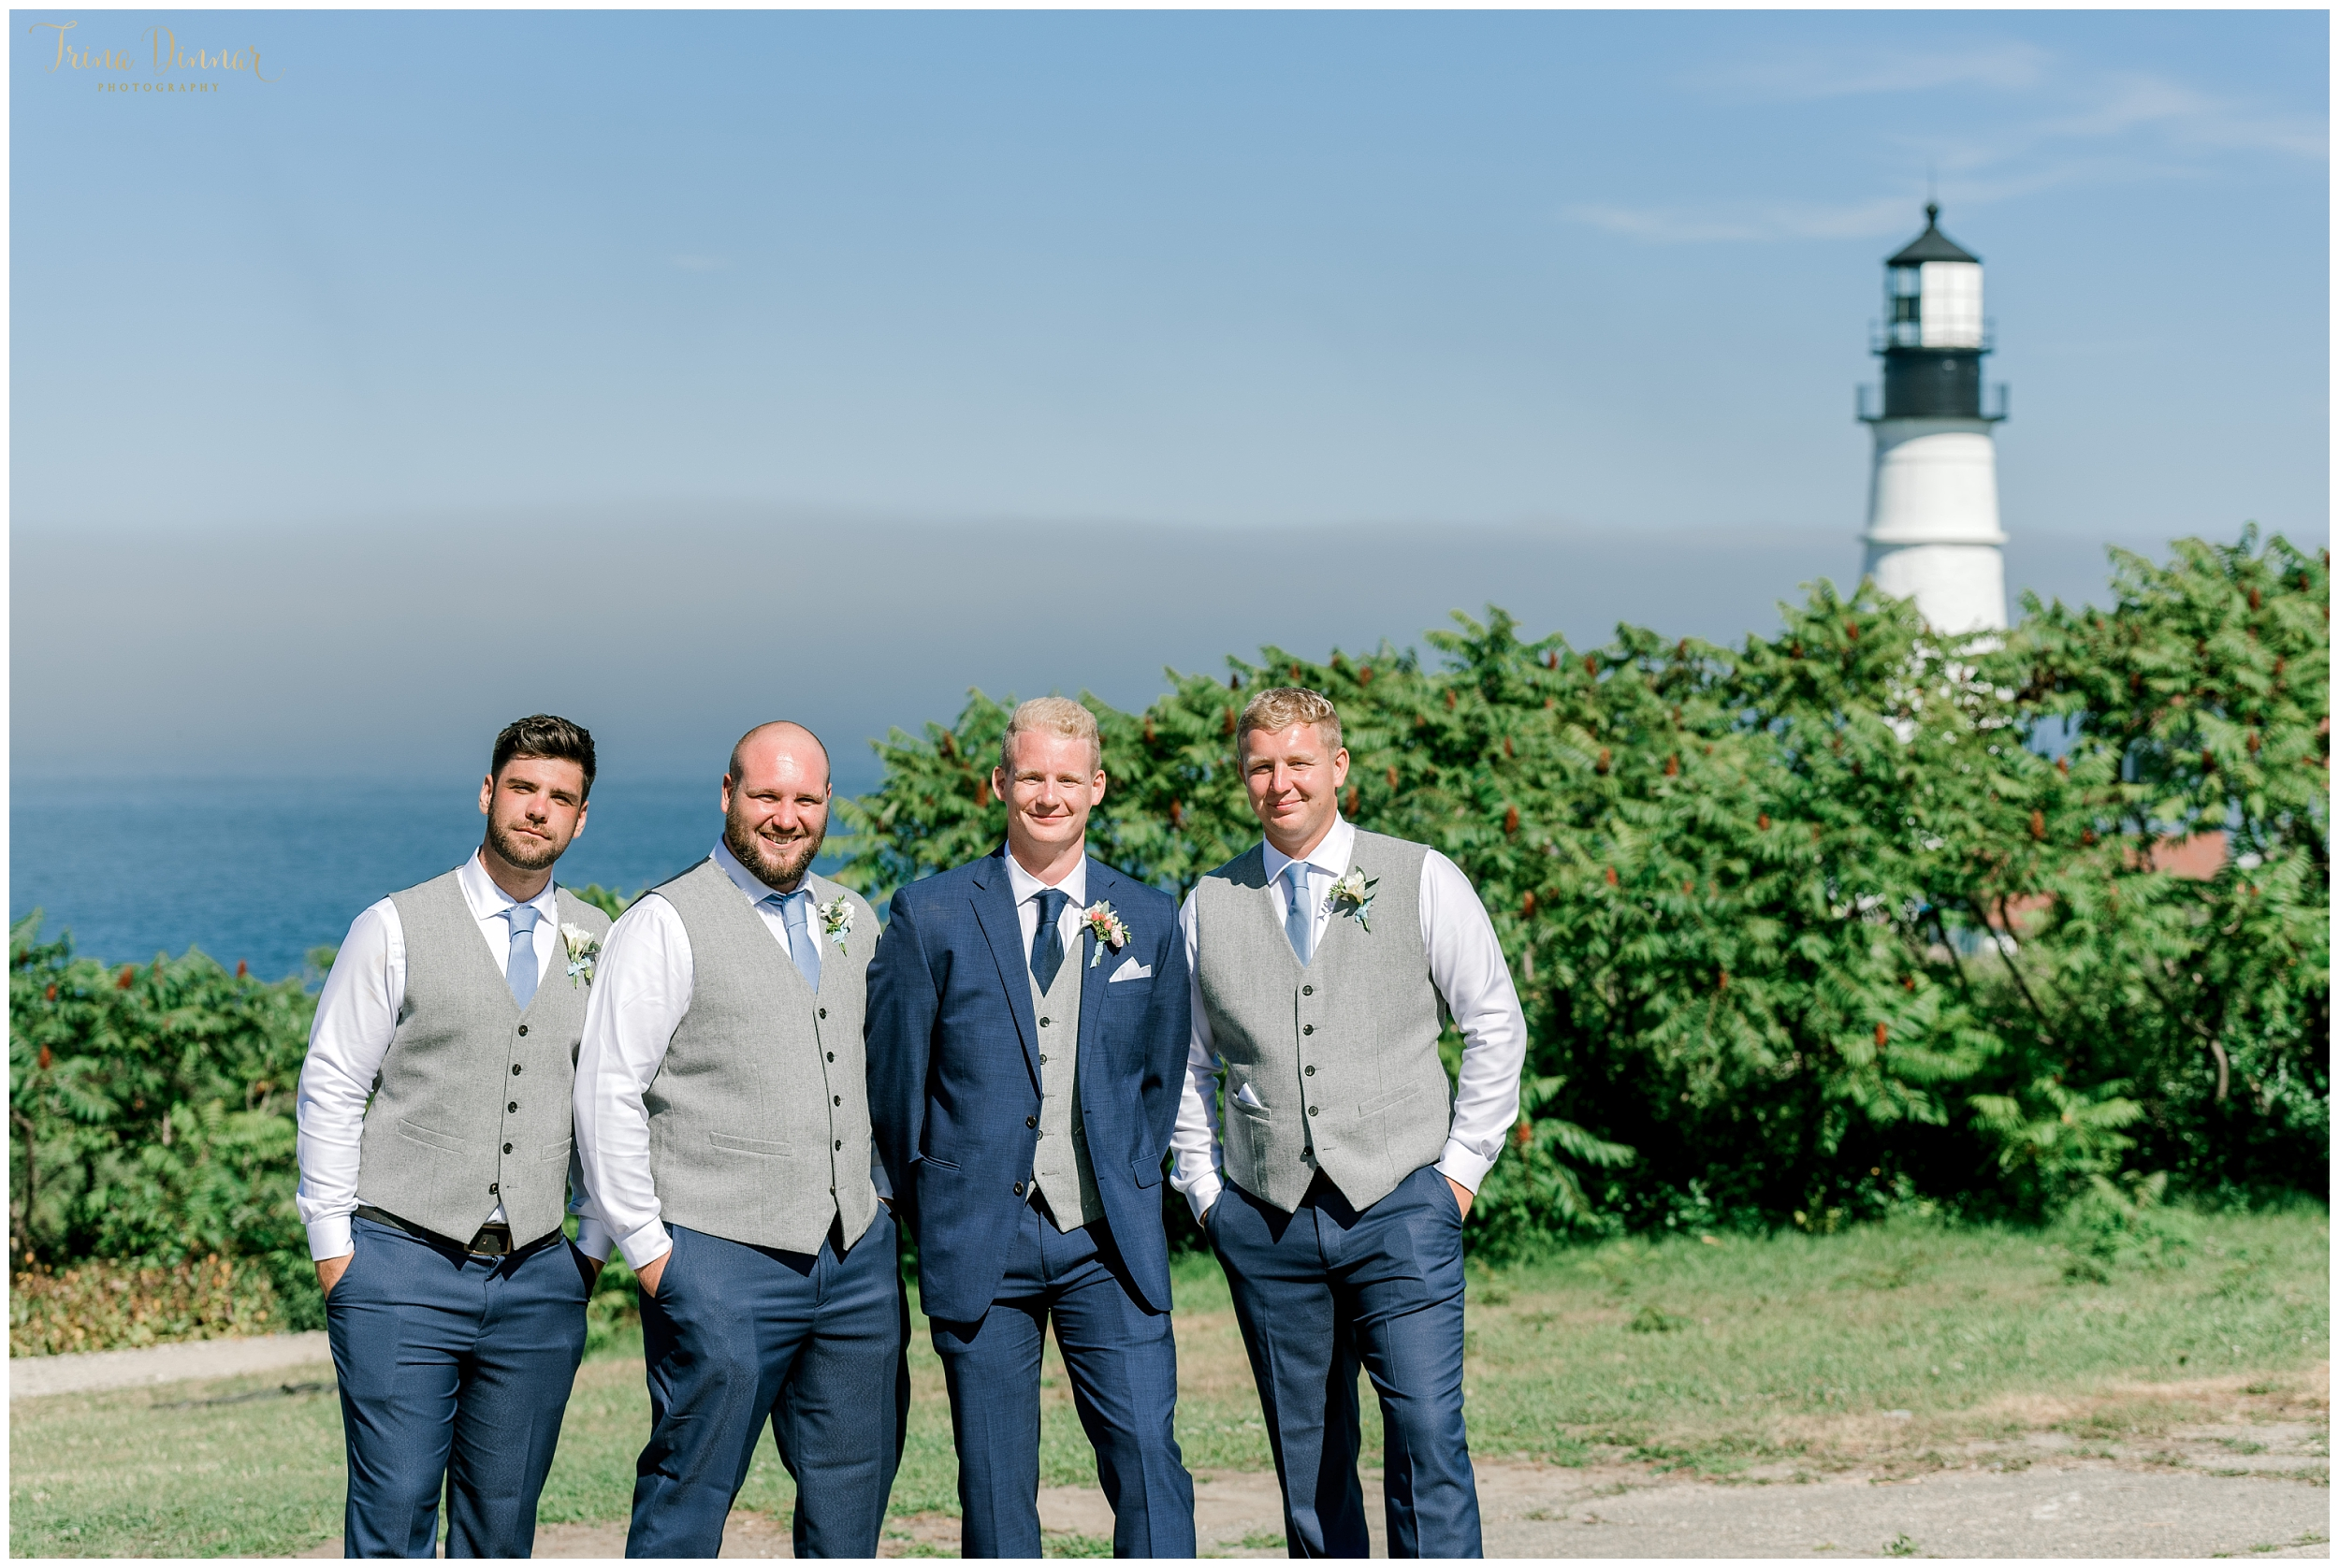 Maine Lighthouse Groom Guys Wedding Photos